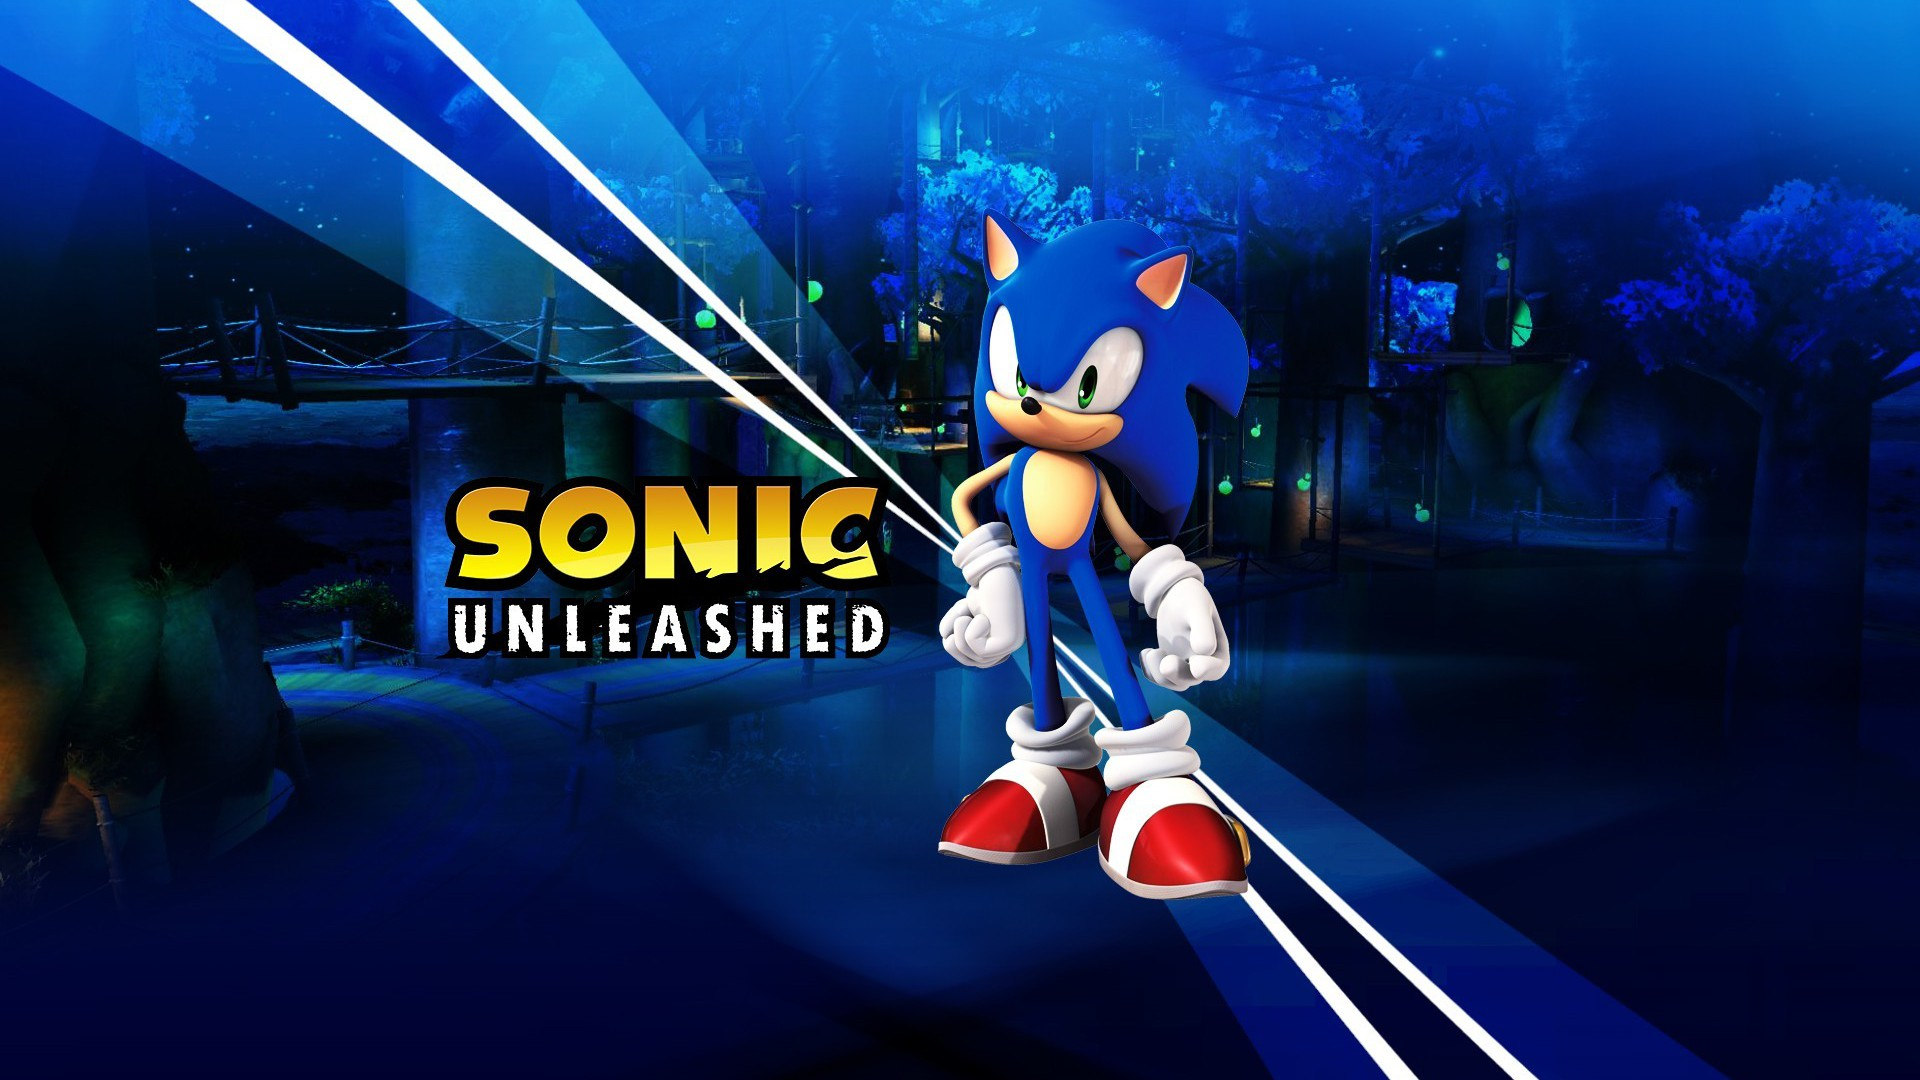 Sonic The Hedgehog Unleashed Wallpaper Allwallpaper In